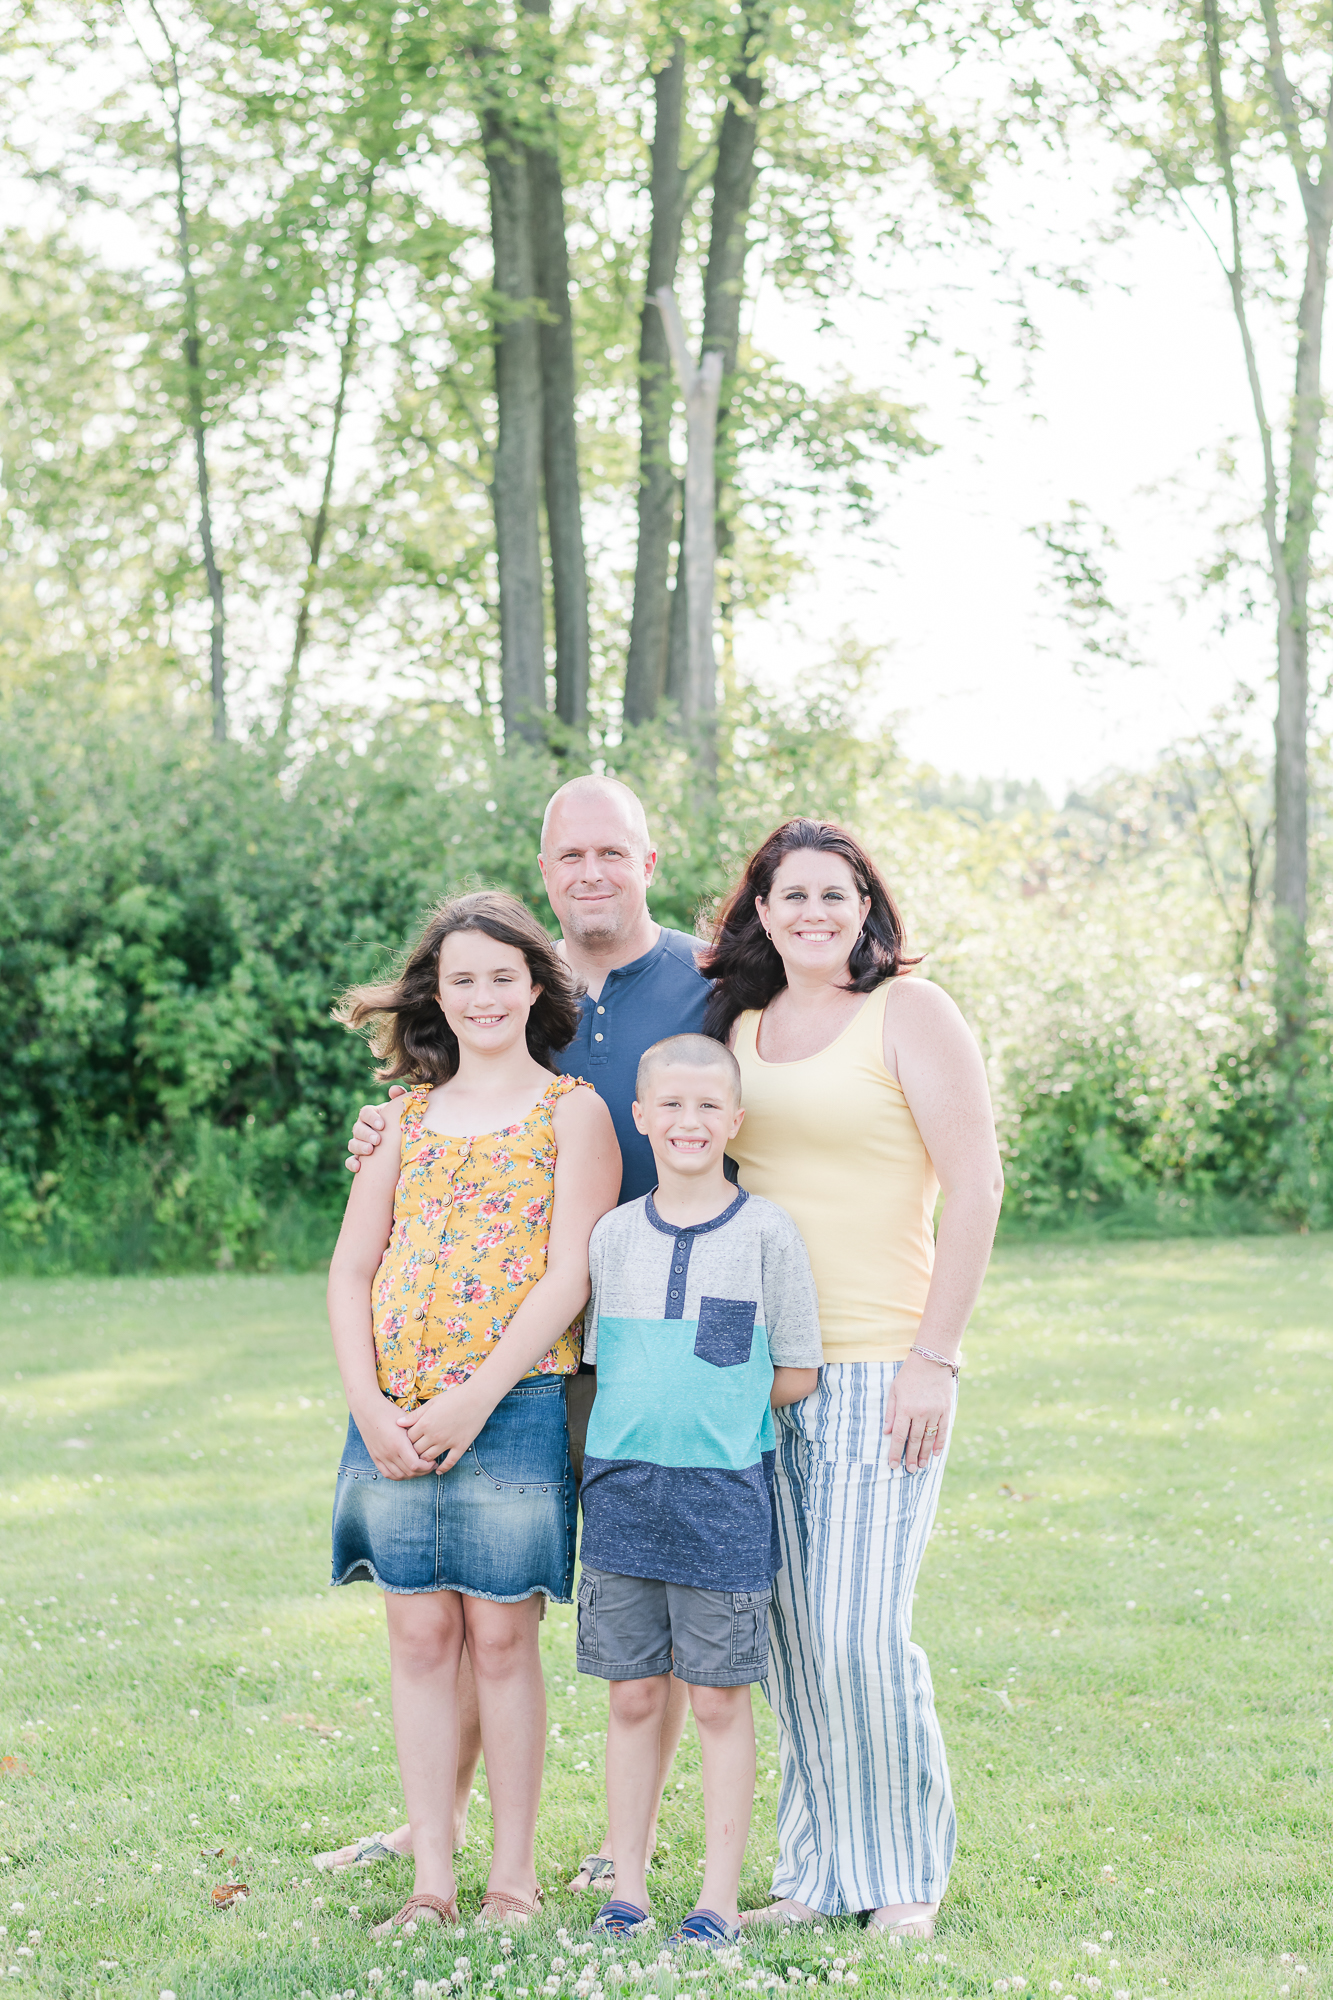 Summer_B Family Portraits Session_Mugrage Park_Medina_Ohio-1.jpg